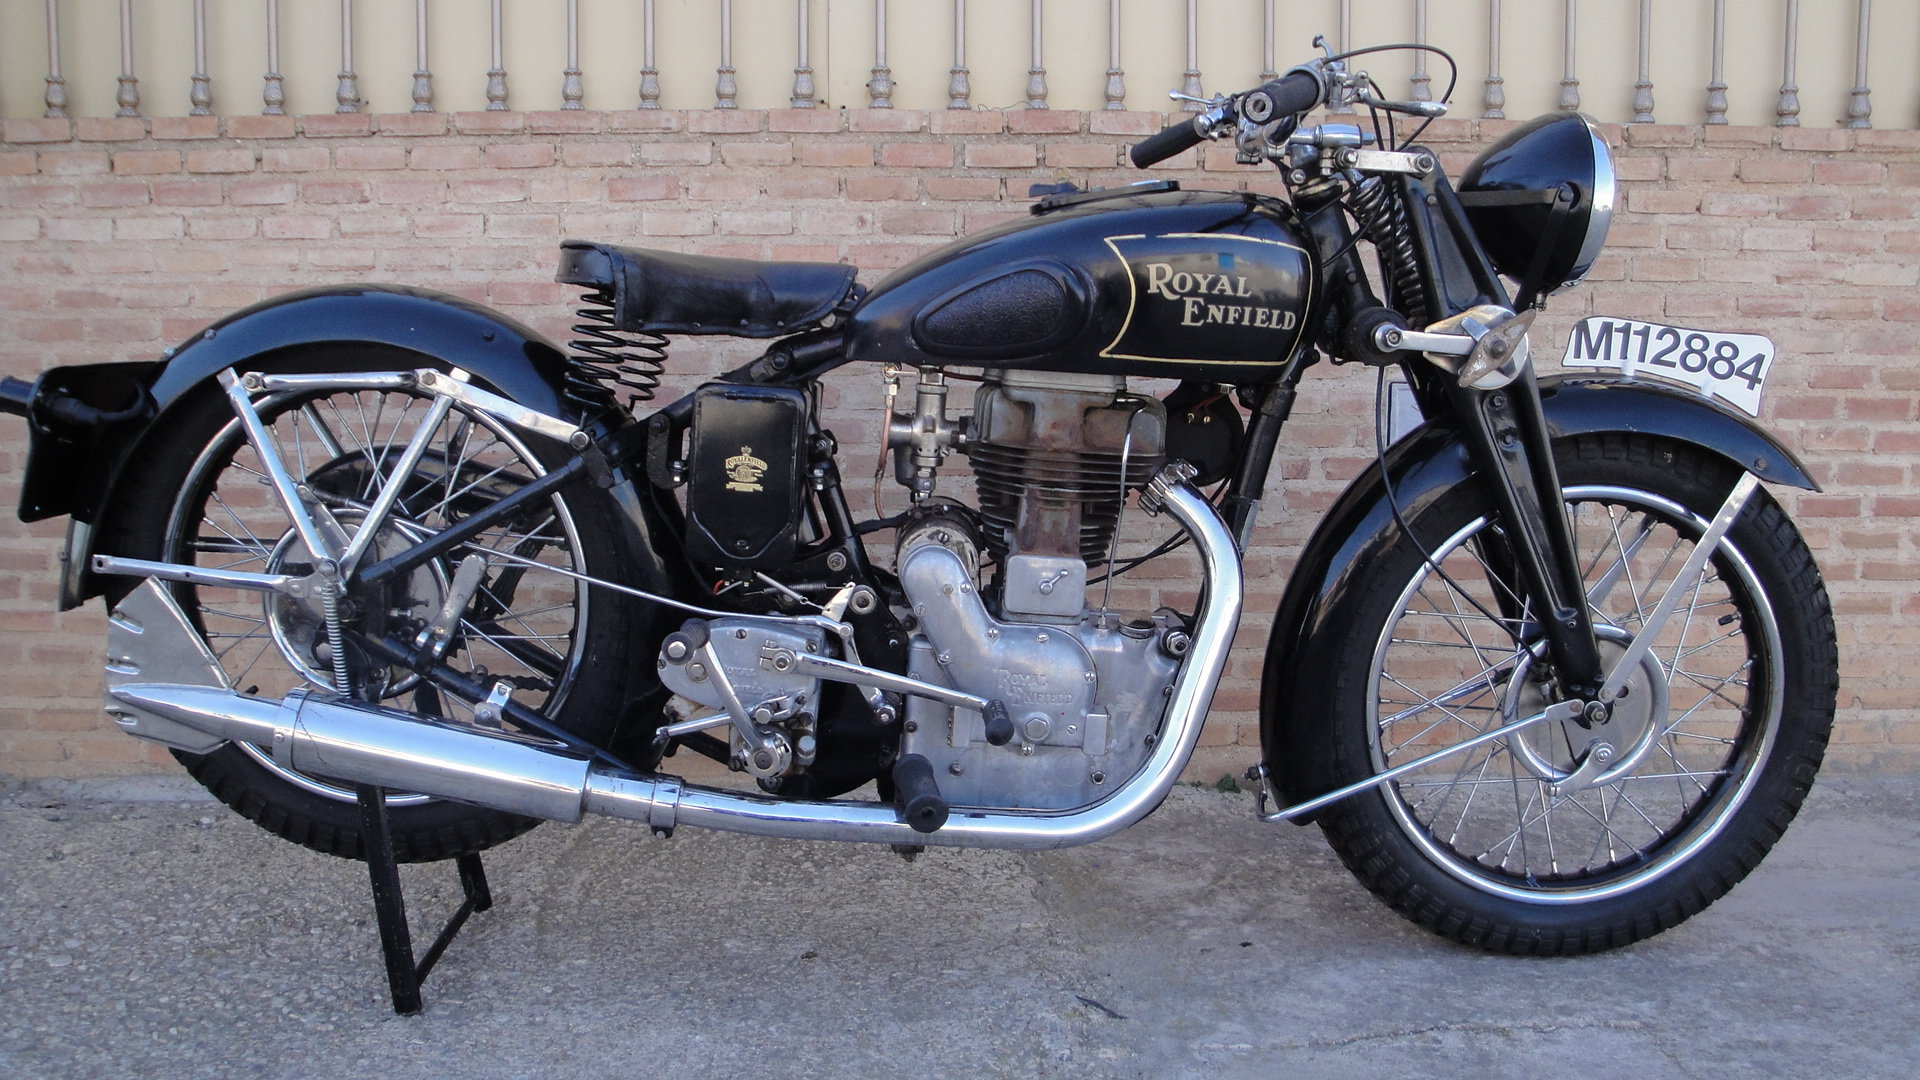 ROYAL ENFIELD J 500 OHV COMBINATION YEAR 1936 For Sale (picture 2 of 6)